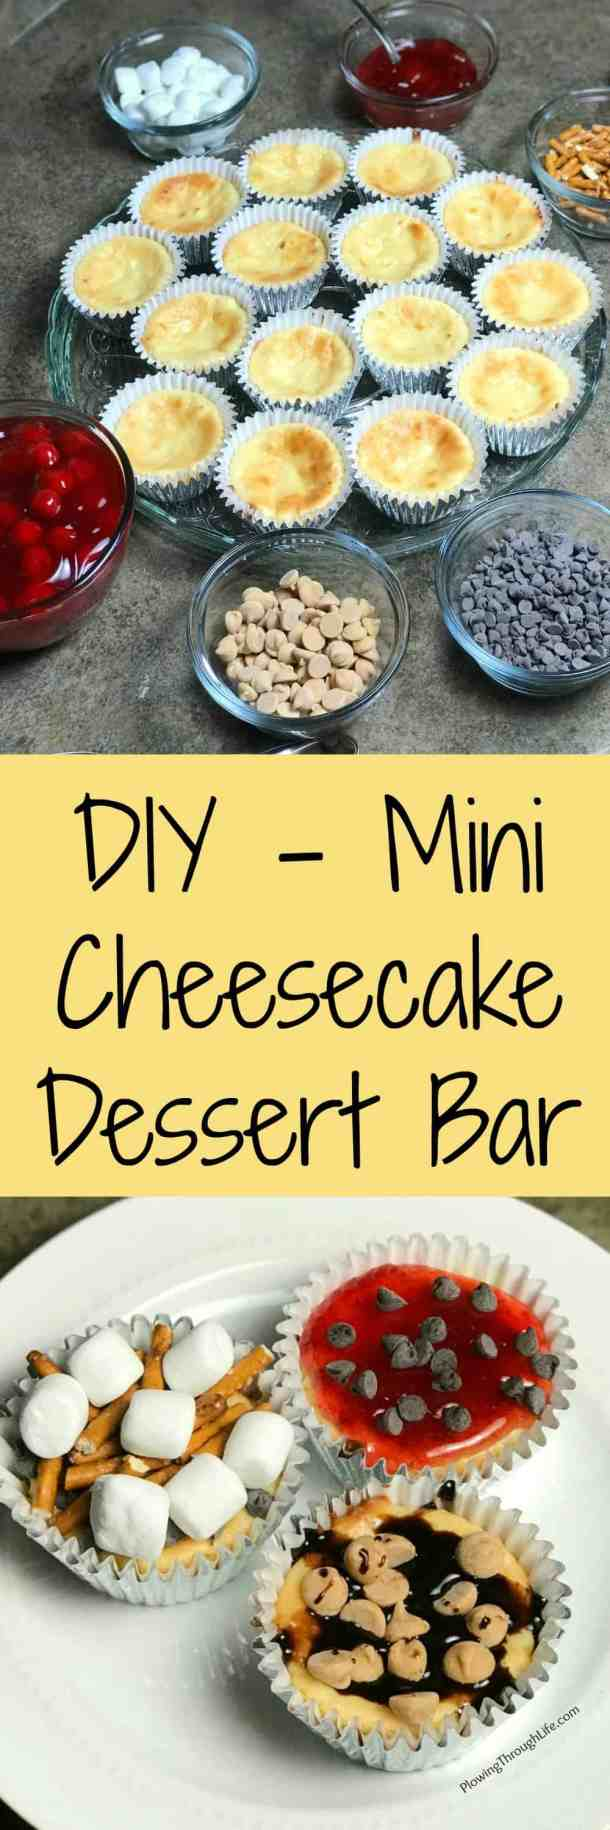 Looking for afun idea for a dessert bar? Then try these easy mini individual cheesecakes for a cheesecake bar.  All of our dinner party guests really enjoyed making DIY mini cheesecake desserts!